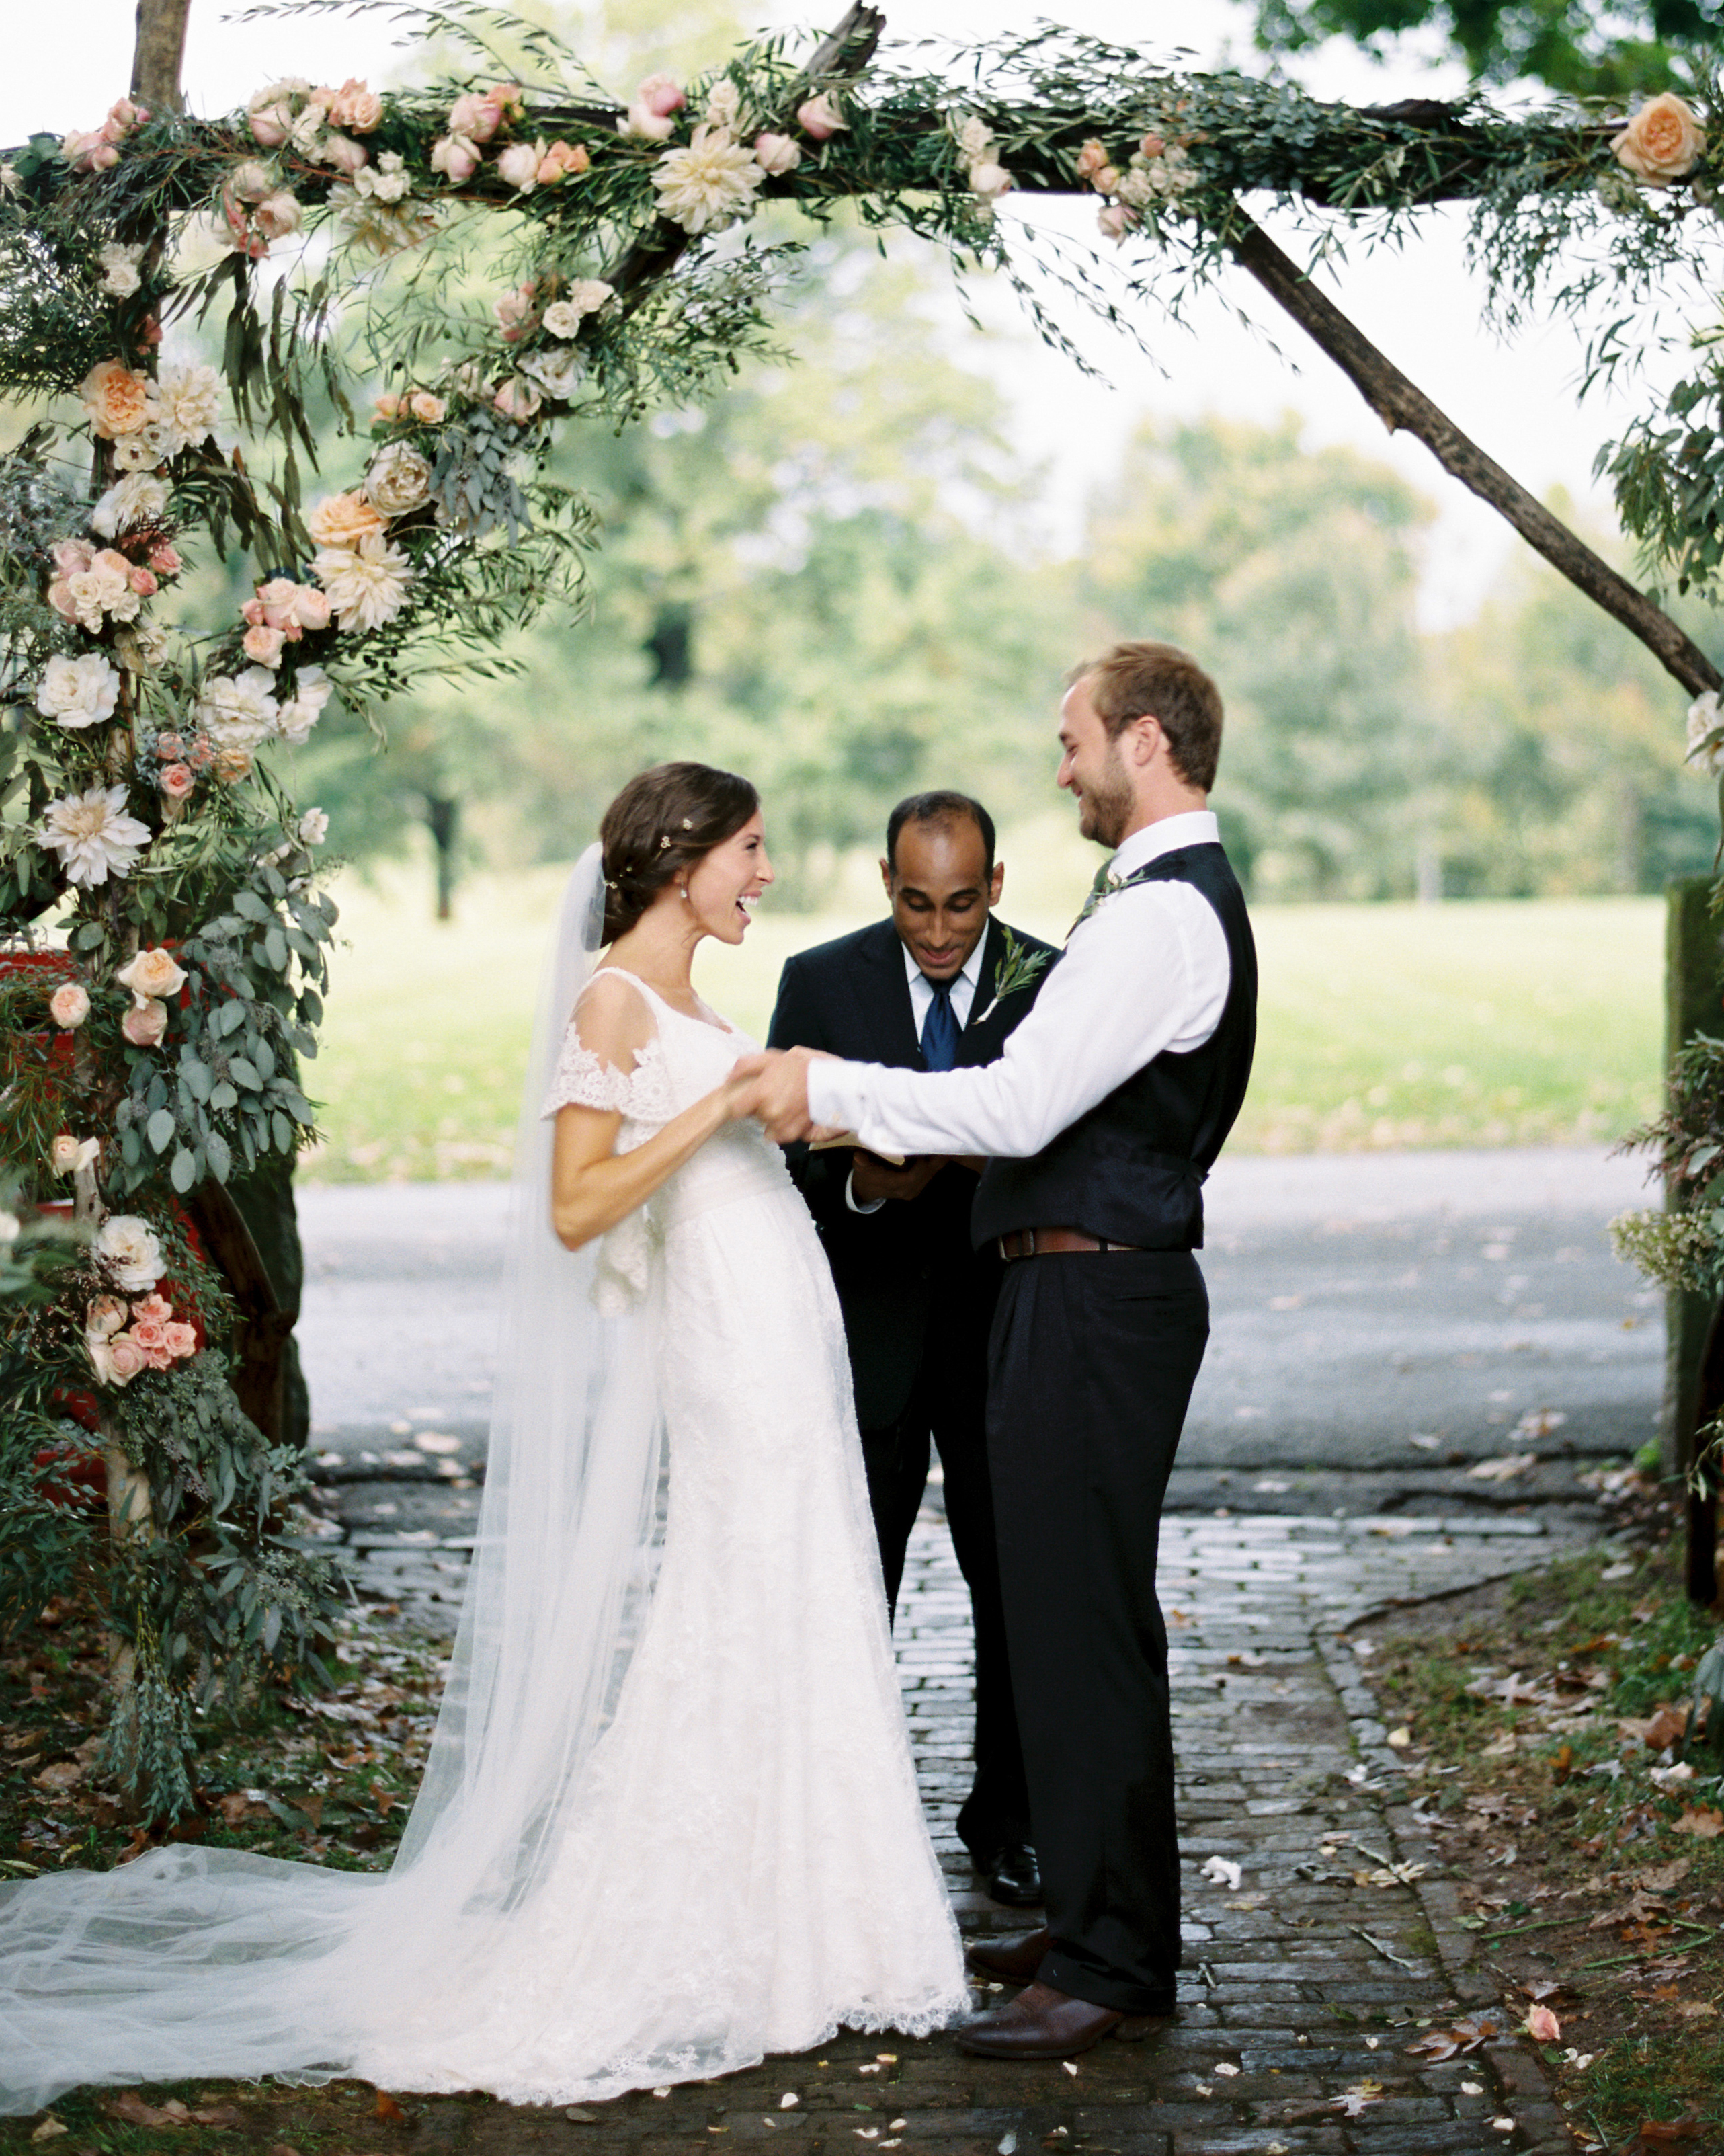 Everything You Need to Know About Asking a Friend to Officiate Your Wedding